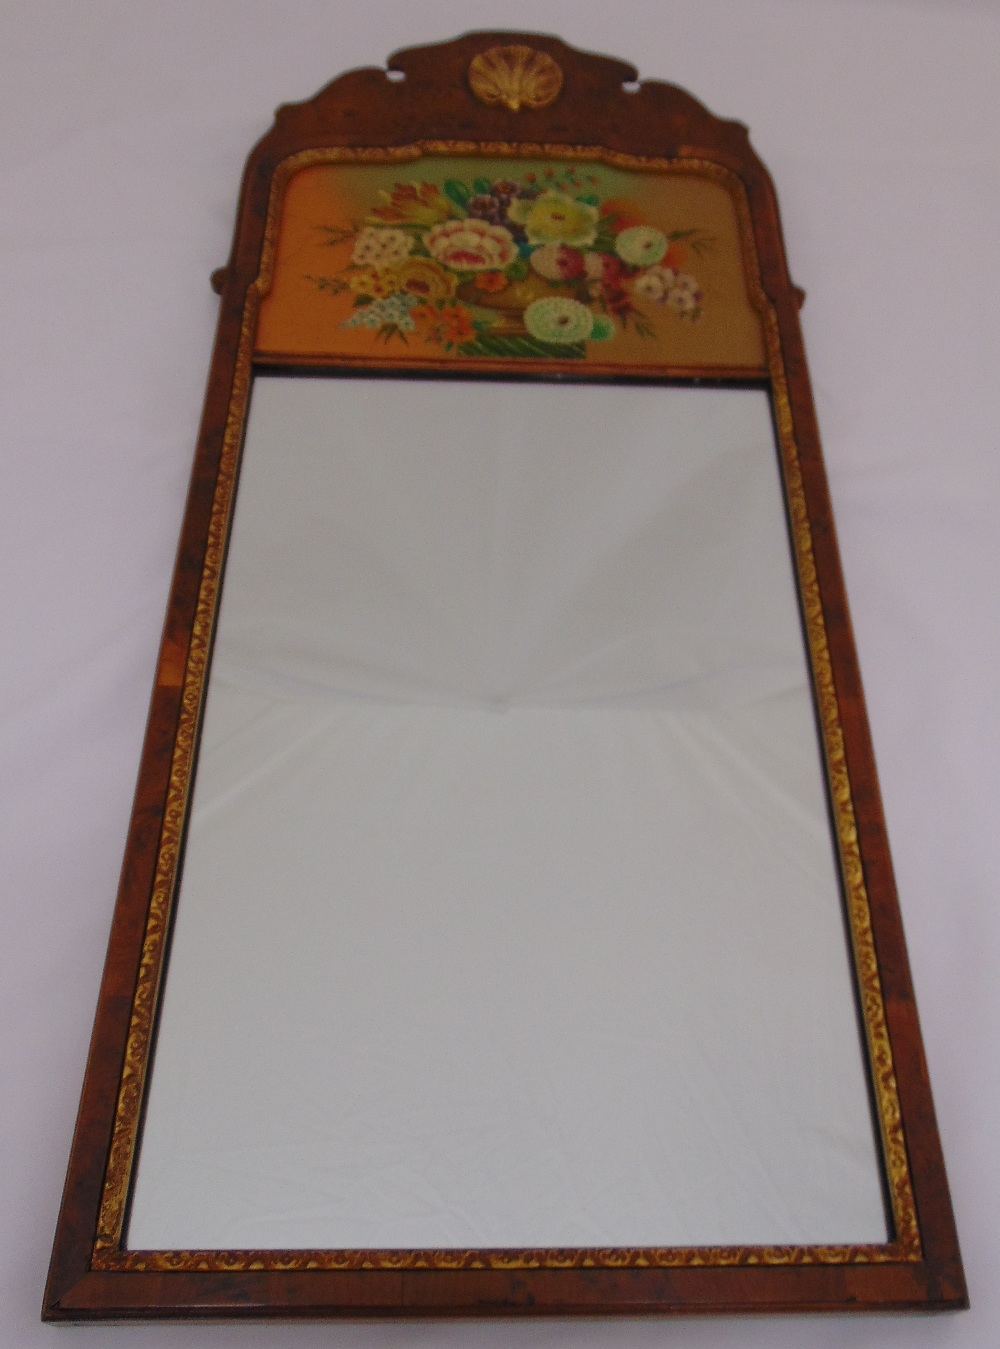 Lot 28 - A rectangular wall mirror in 18th century style, the top painted with flowers and leaves, 79.5 x